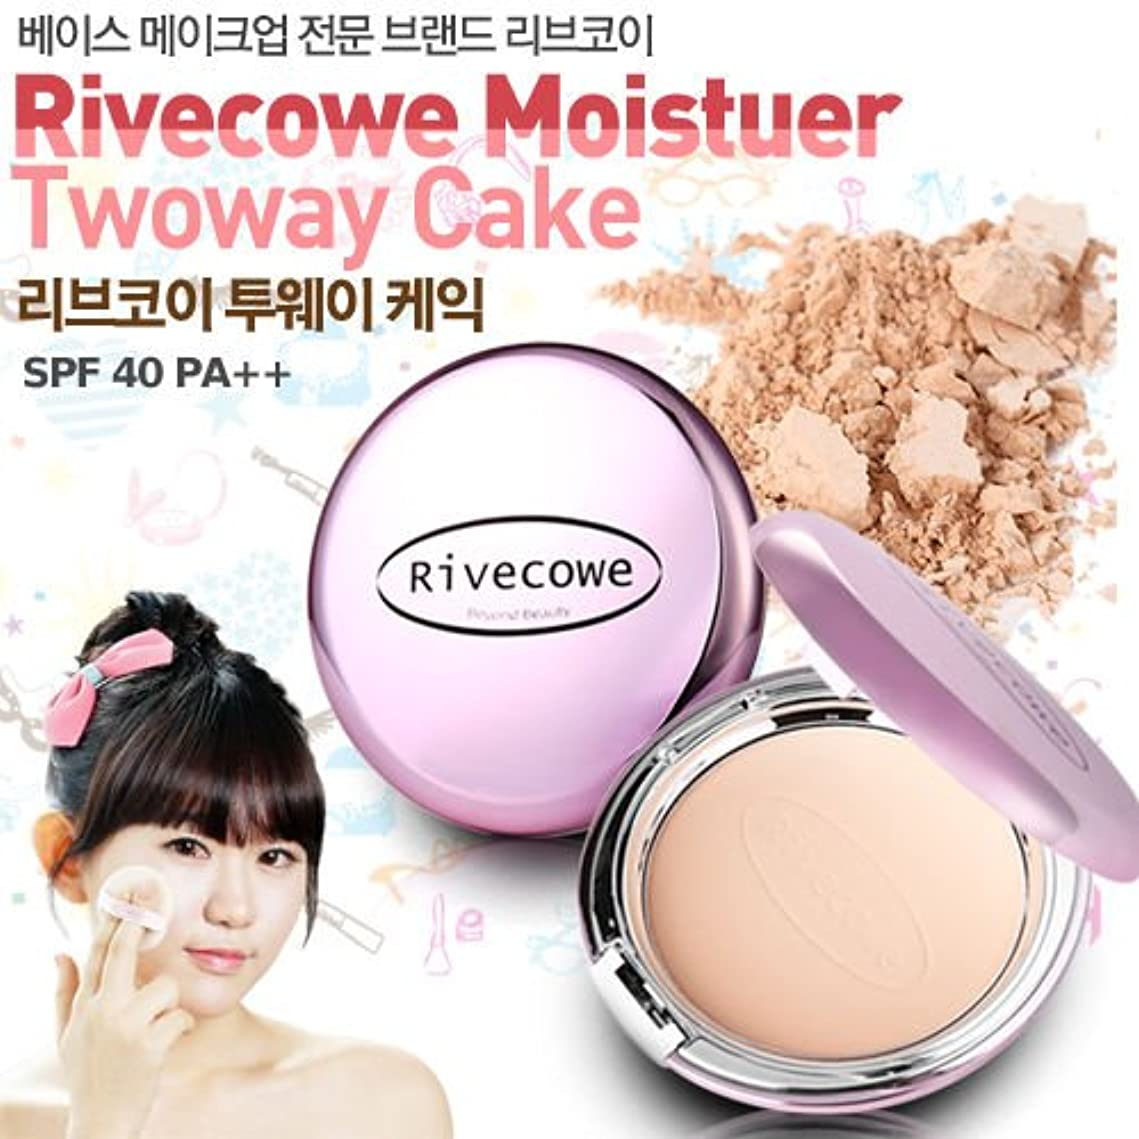 ピルファーサンダル仮装Rivecowe Moisture Twoway Cake (Foundation + Powder) SPF40PA++ 12g (No. 23 Medium Beige) [並行輸入品]